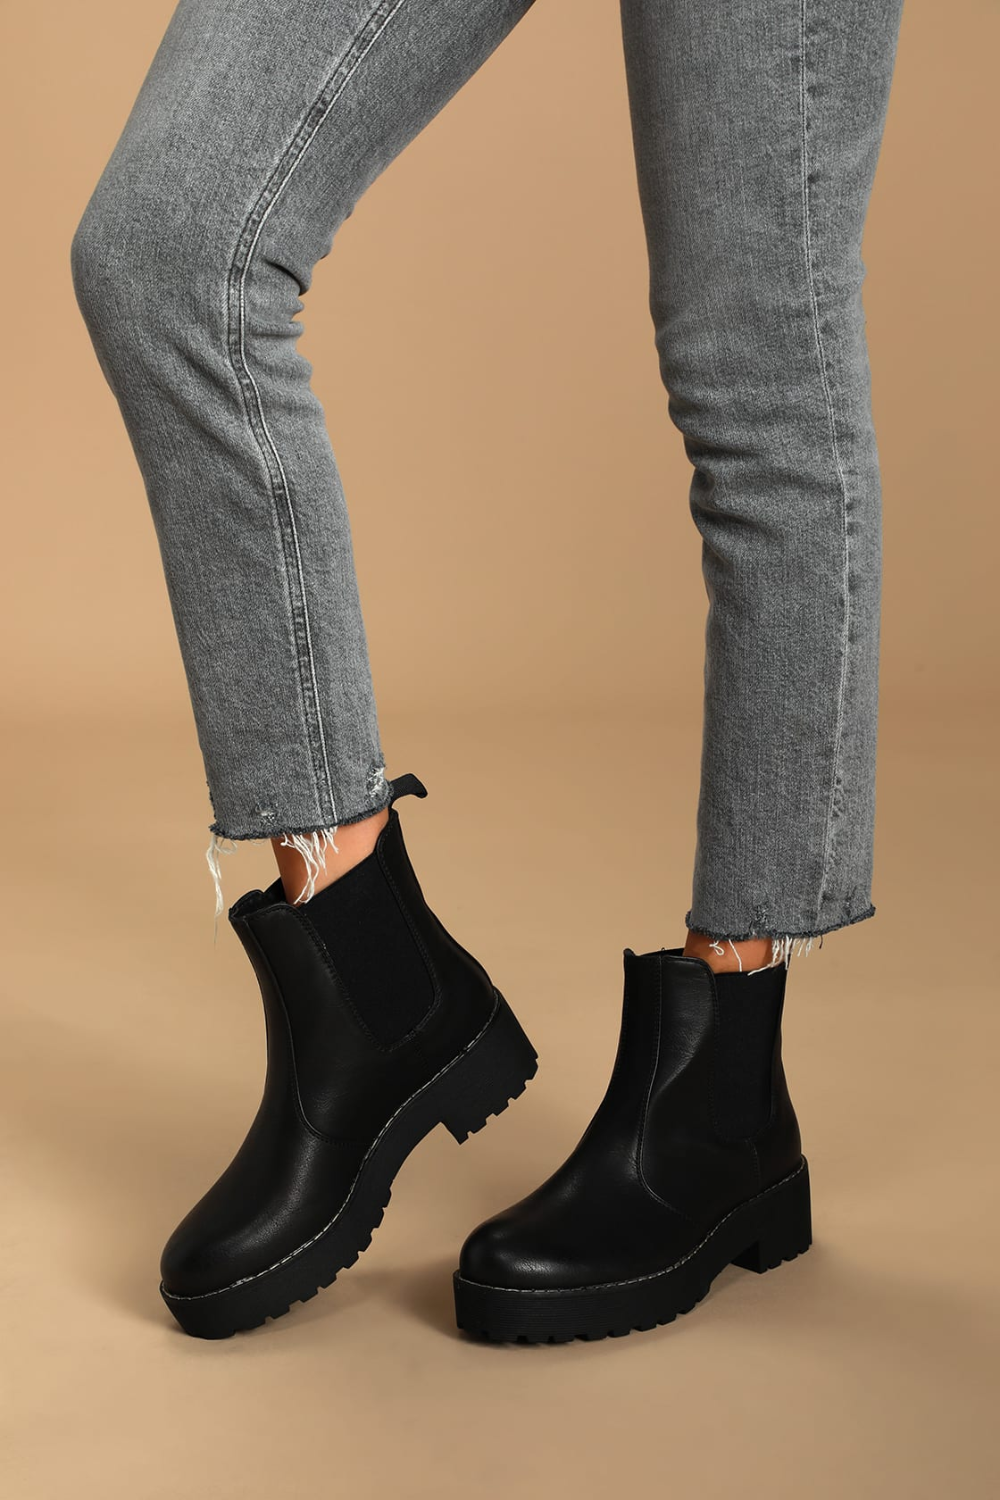 Margo Black Platform Ankle Boots Vegan Leather Boots Black